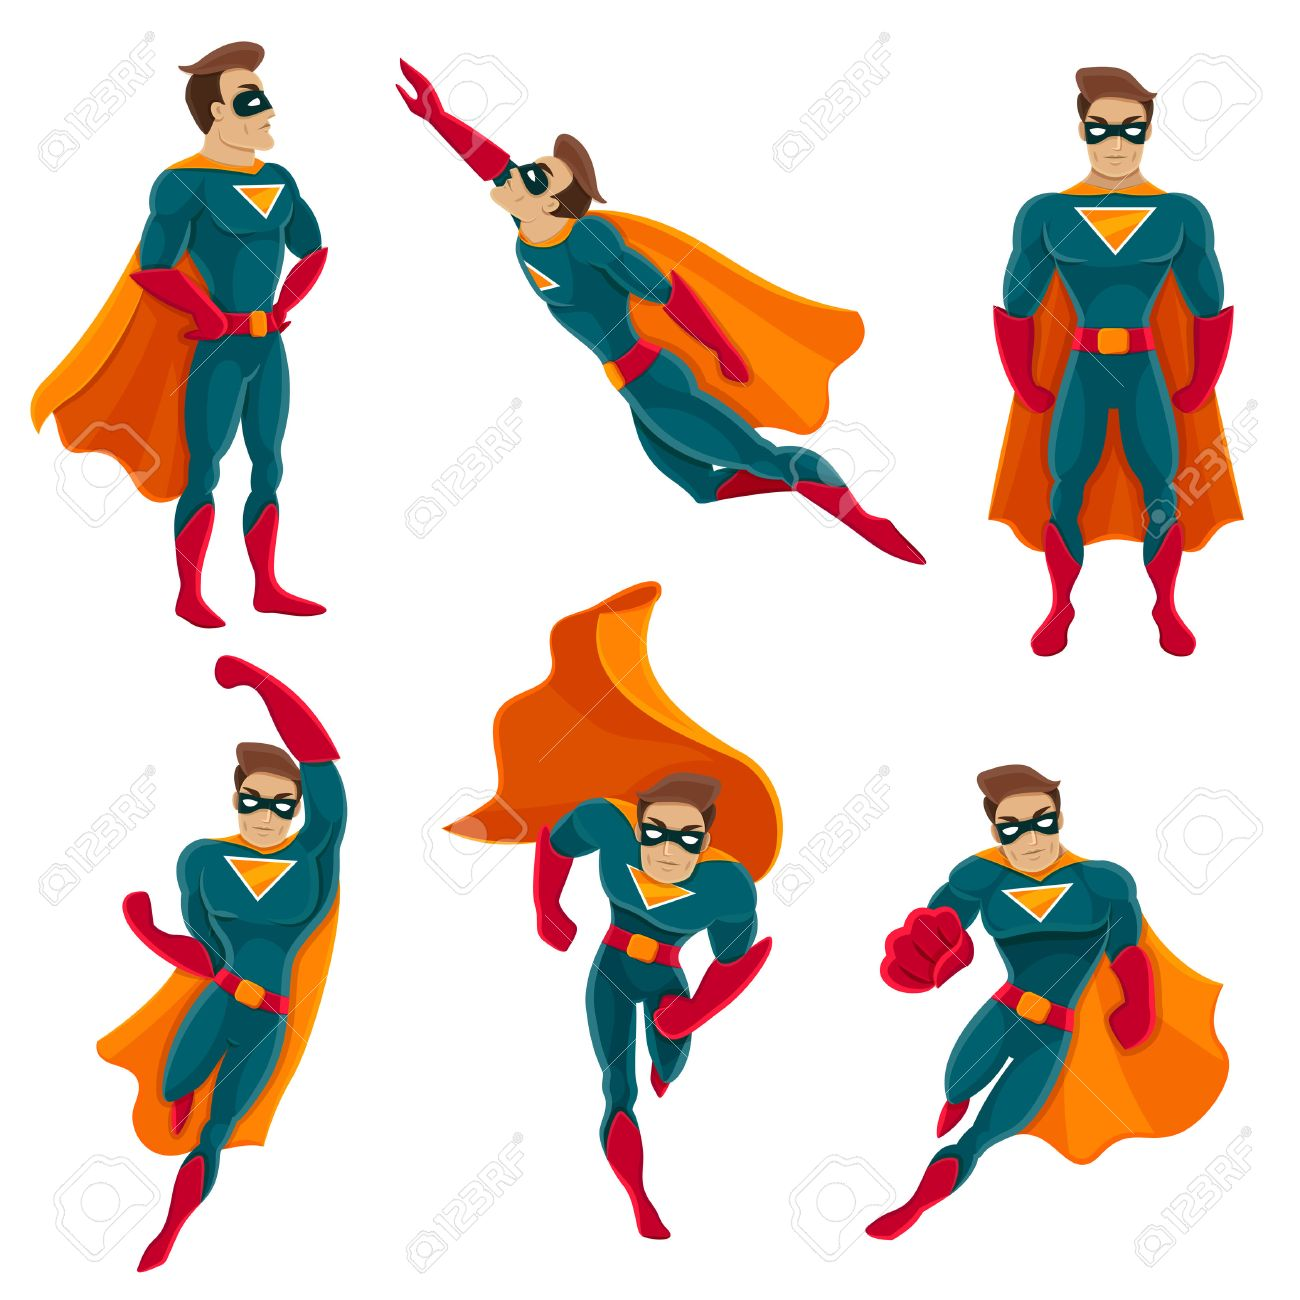 Superhero actions icon set in cartoon colored style different poses vector illustration Stock Vector - 53878469